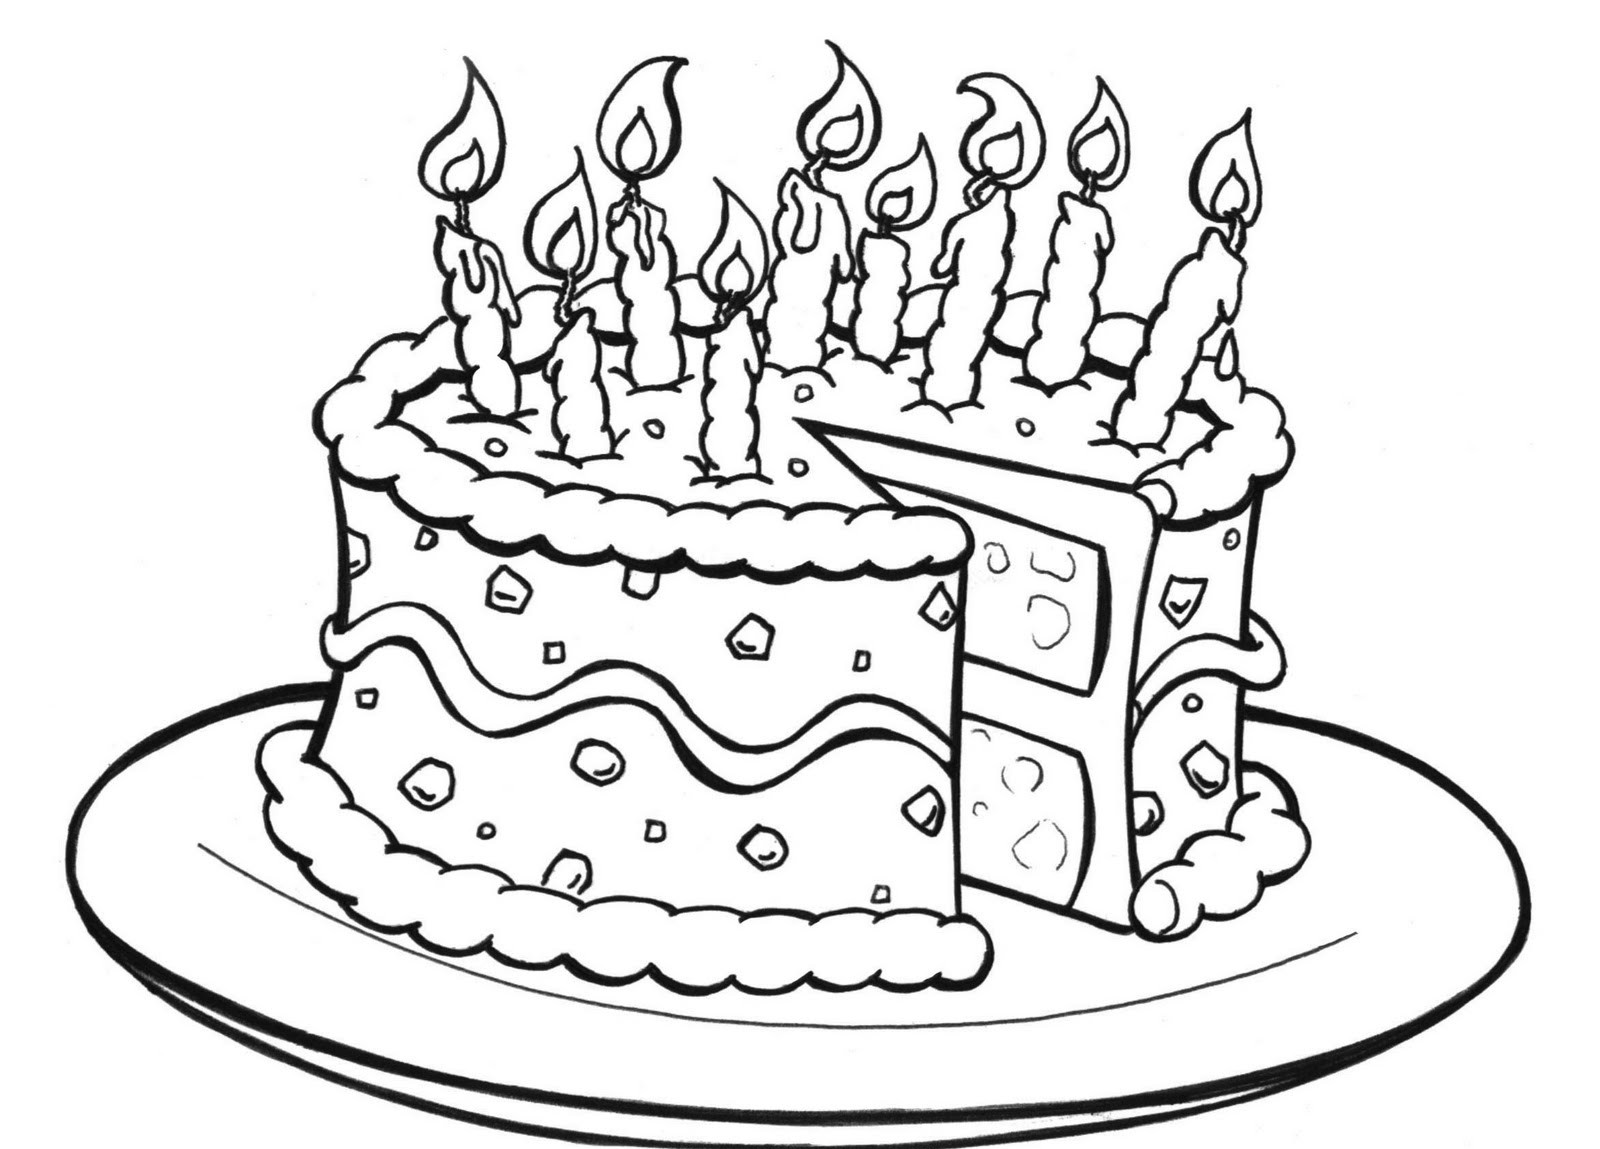 Colouring in birthday cake - Birthday Cake Coloring Pages